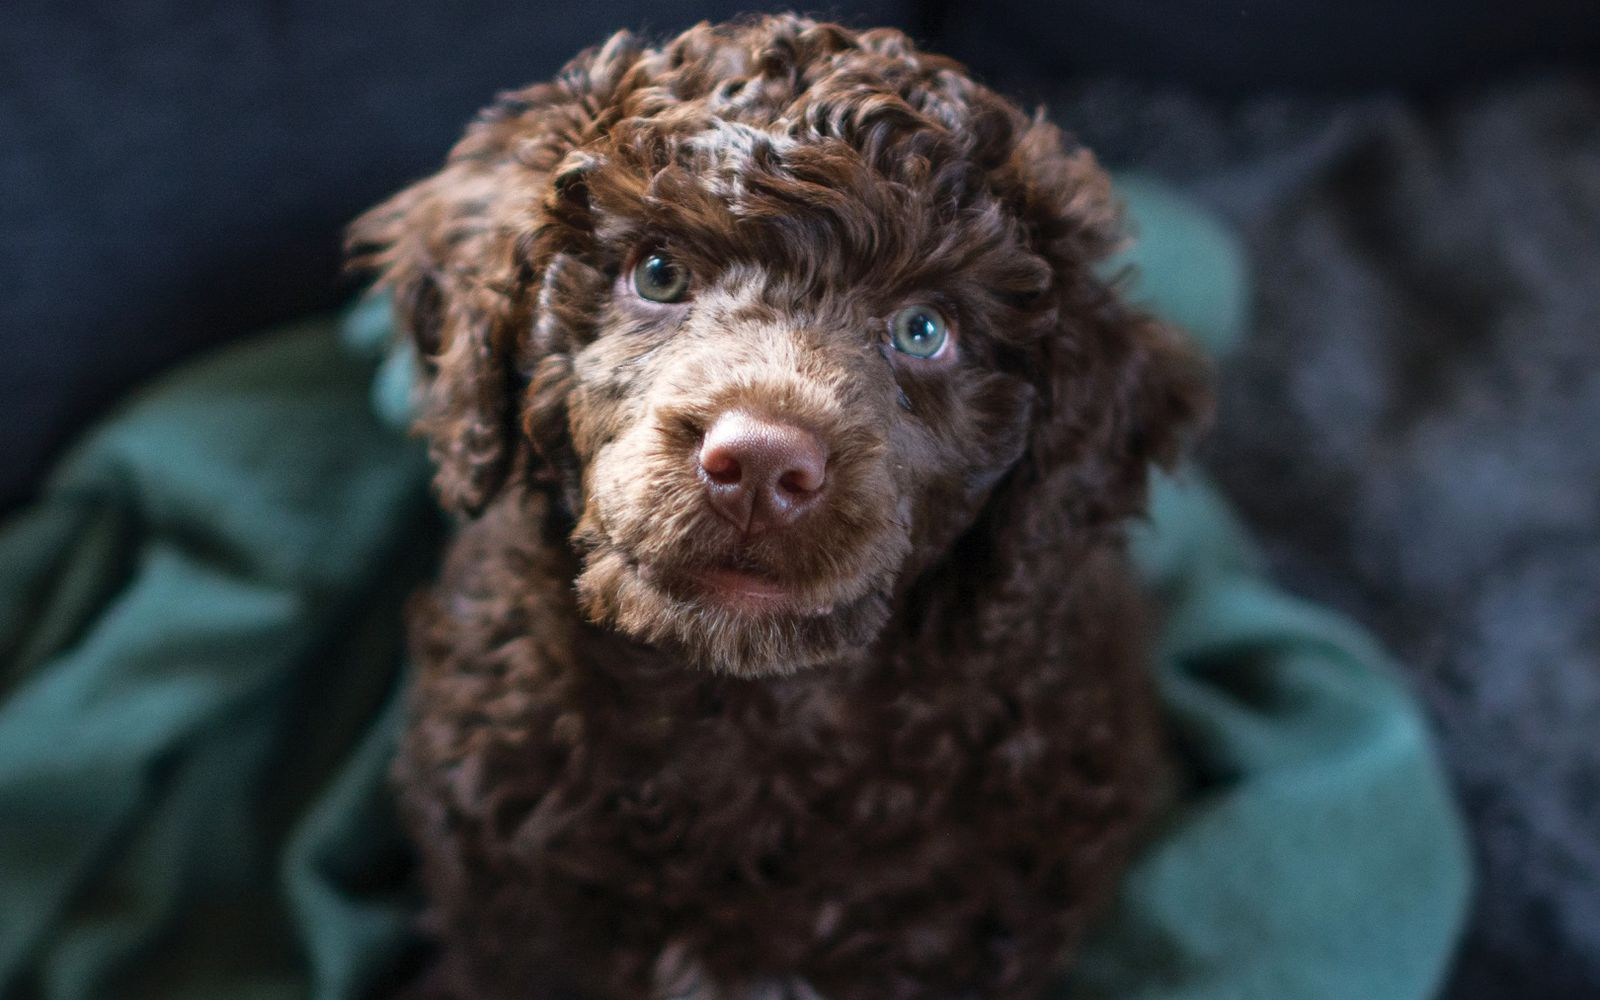 Portuguese Water Dog - Puppy